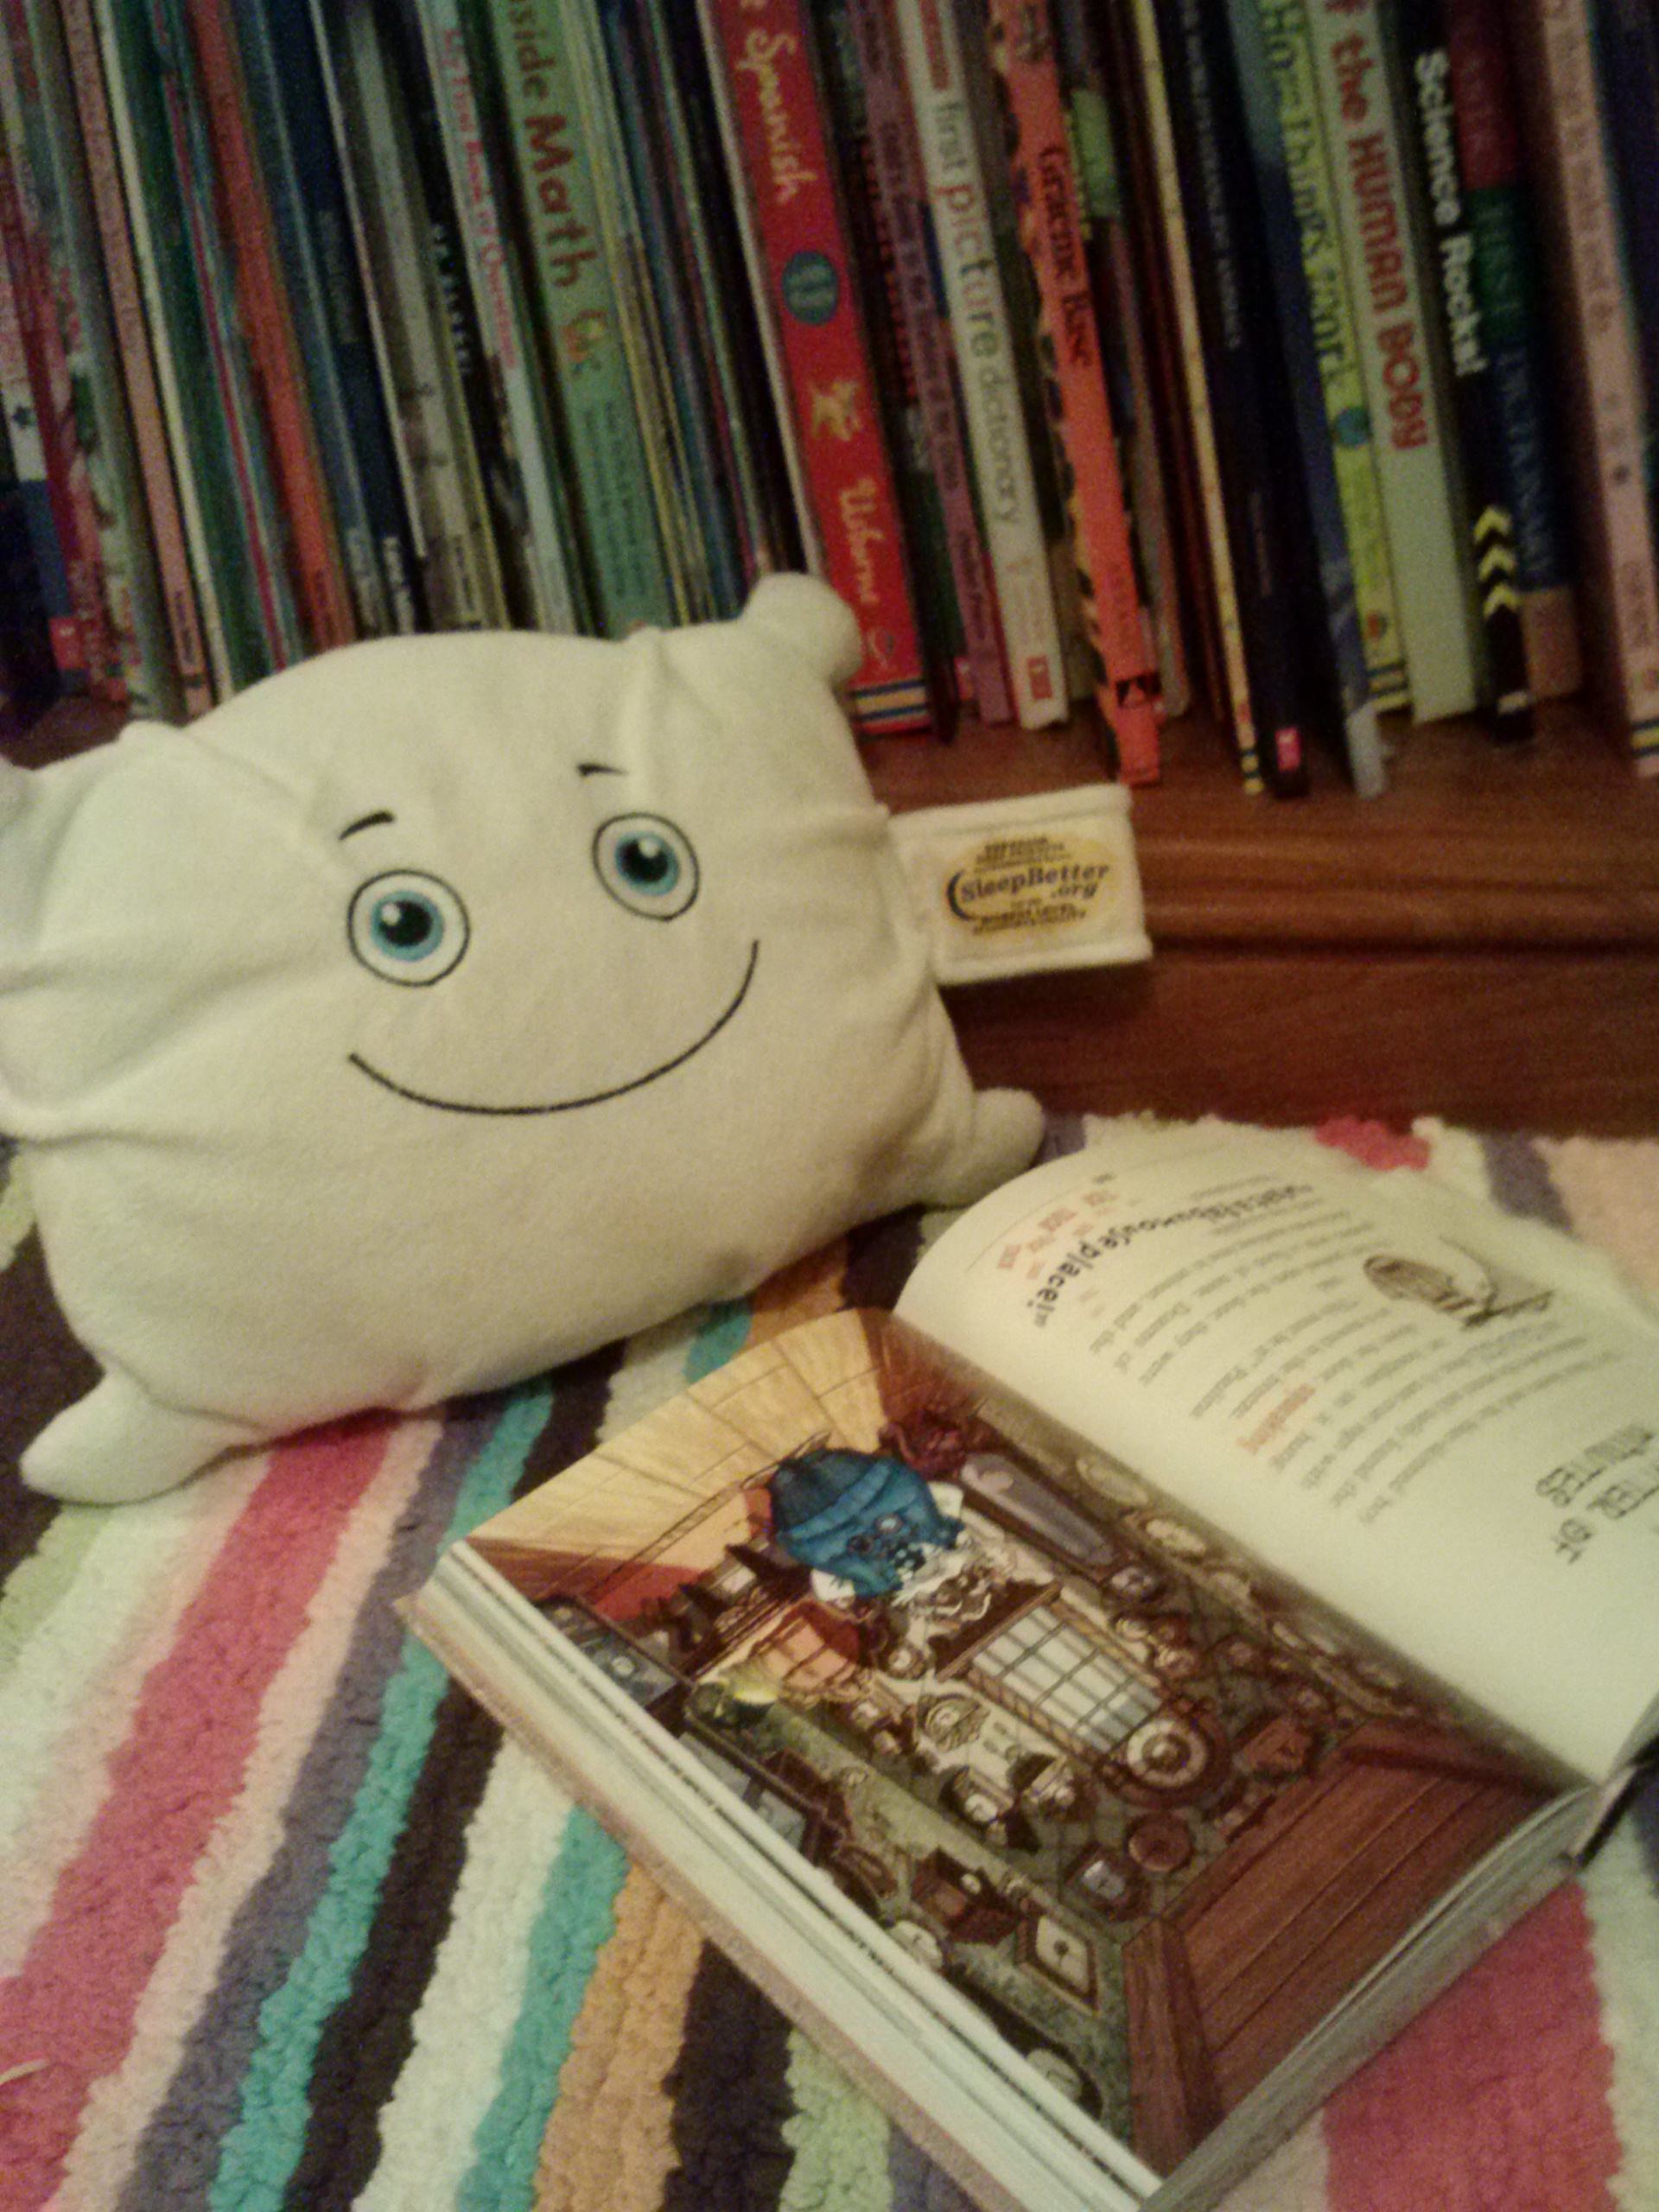 McStuffy is reading a book before turning in for the night